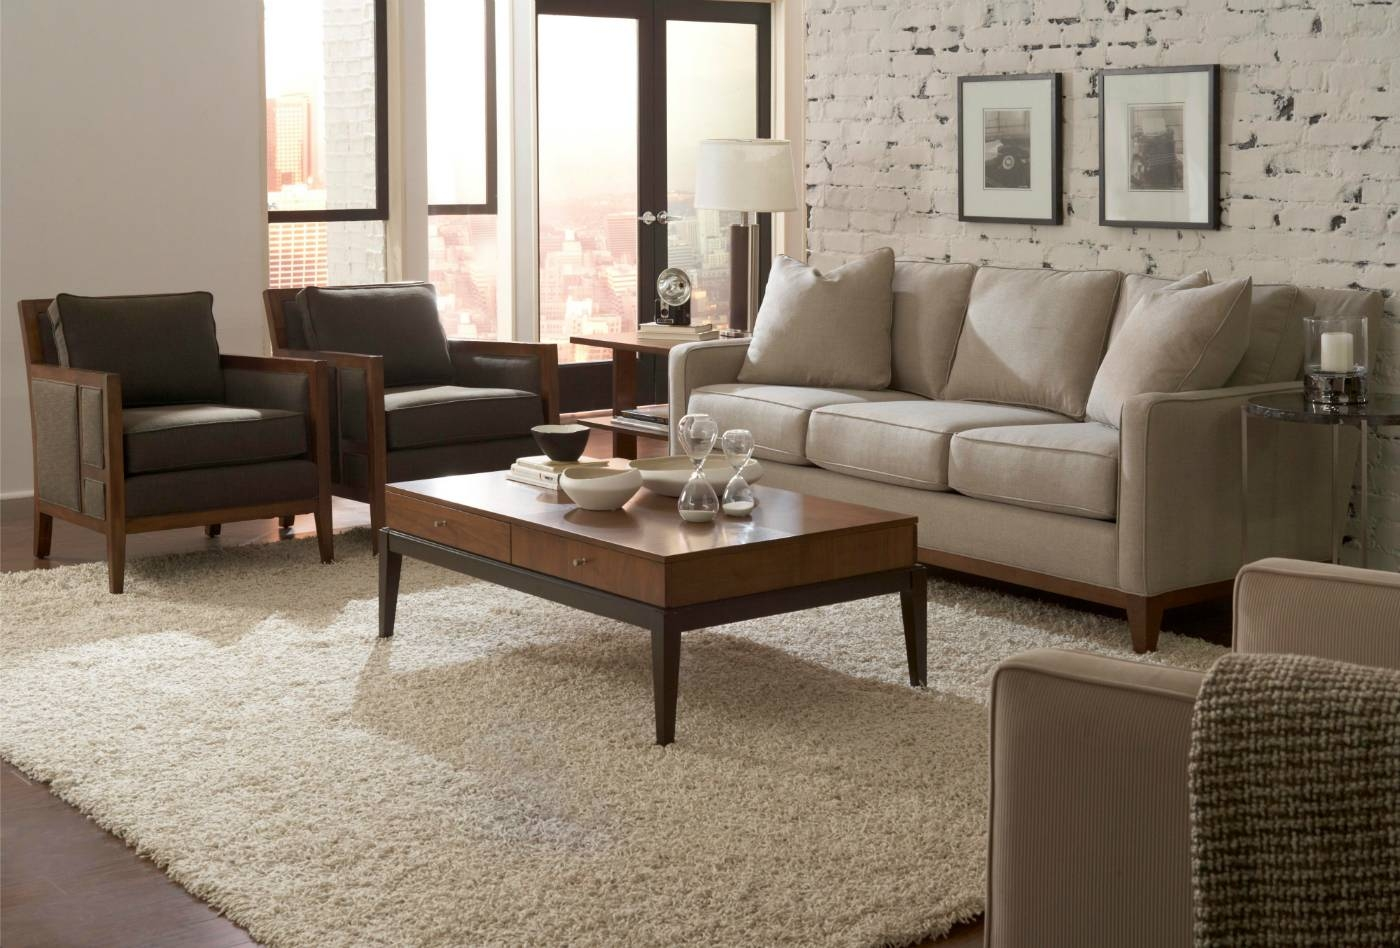 Quinn Living Room Sofa And Chairs - Chambers Furniture within Living Room Sofas and Chairs (Image 12 of 15)